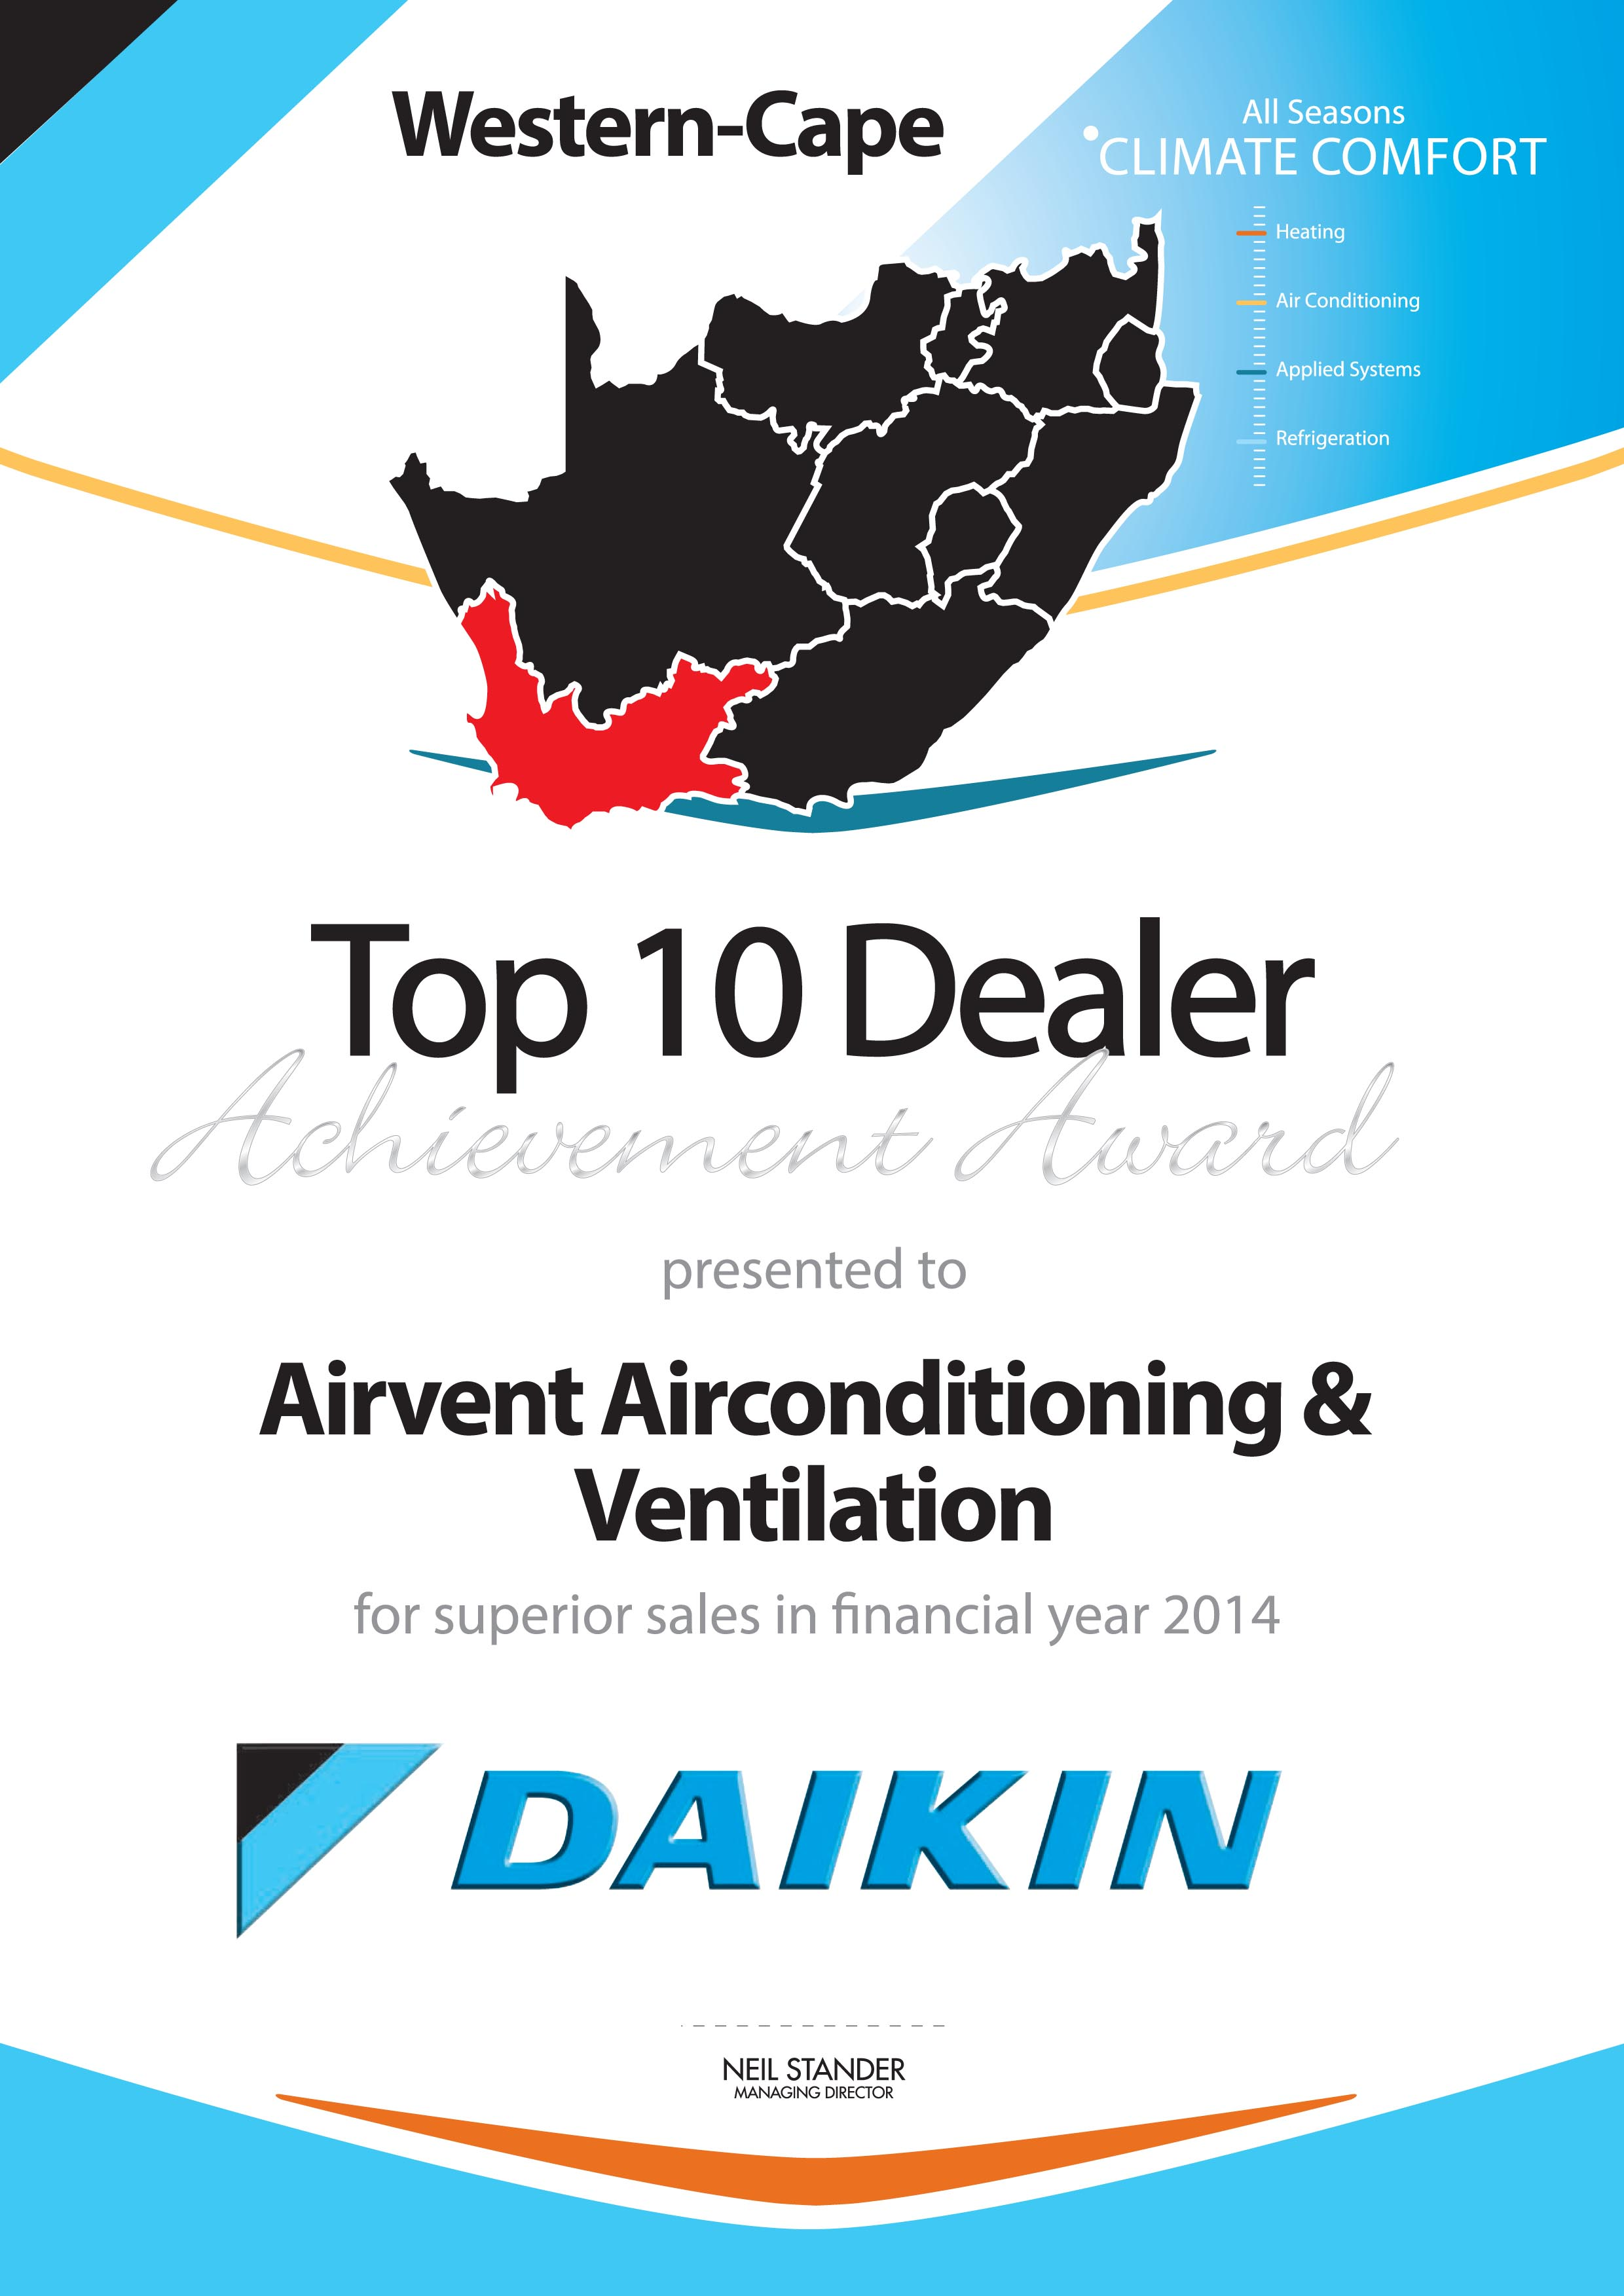 Airvent Airconditioning & Ventiliation Award: Daikin Top Dealer Achievement Award 2014